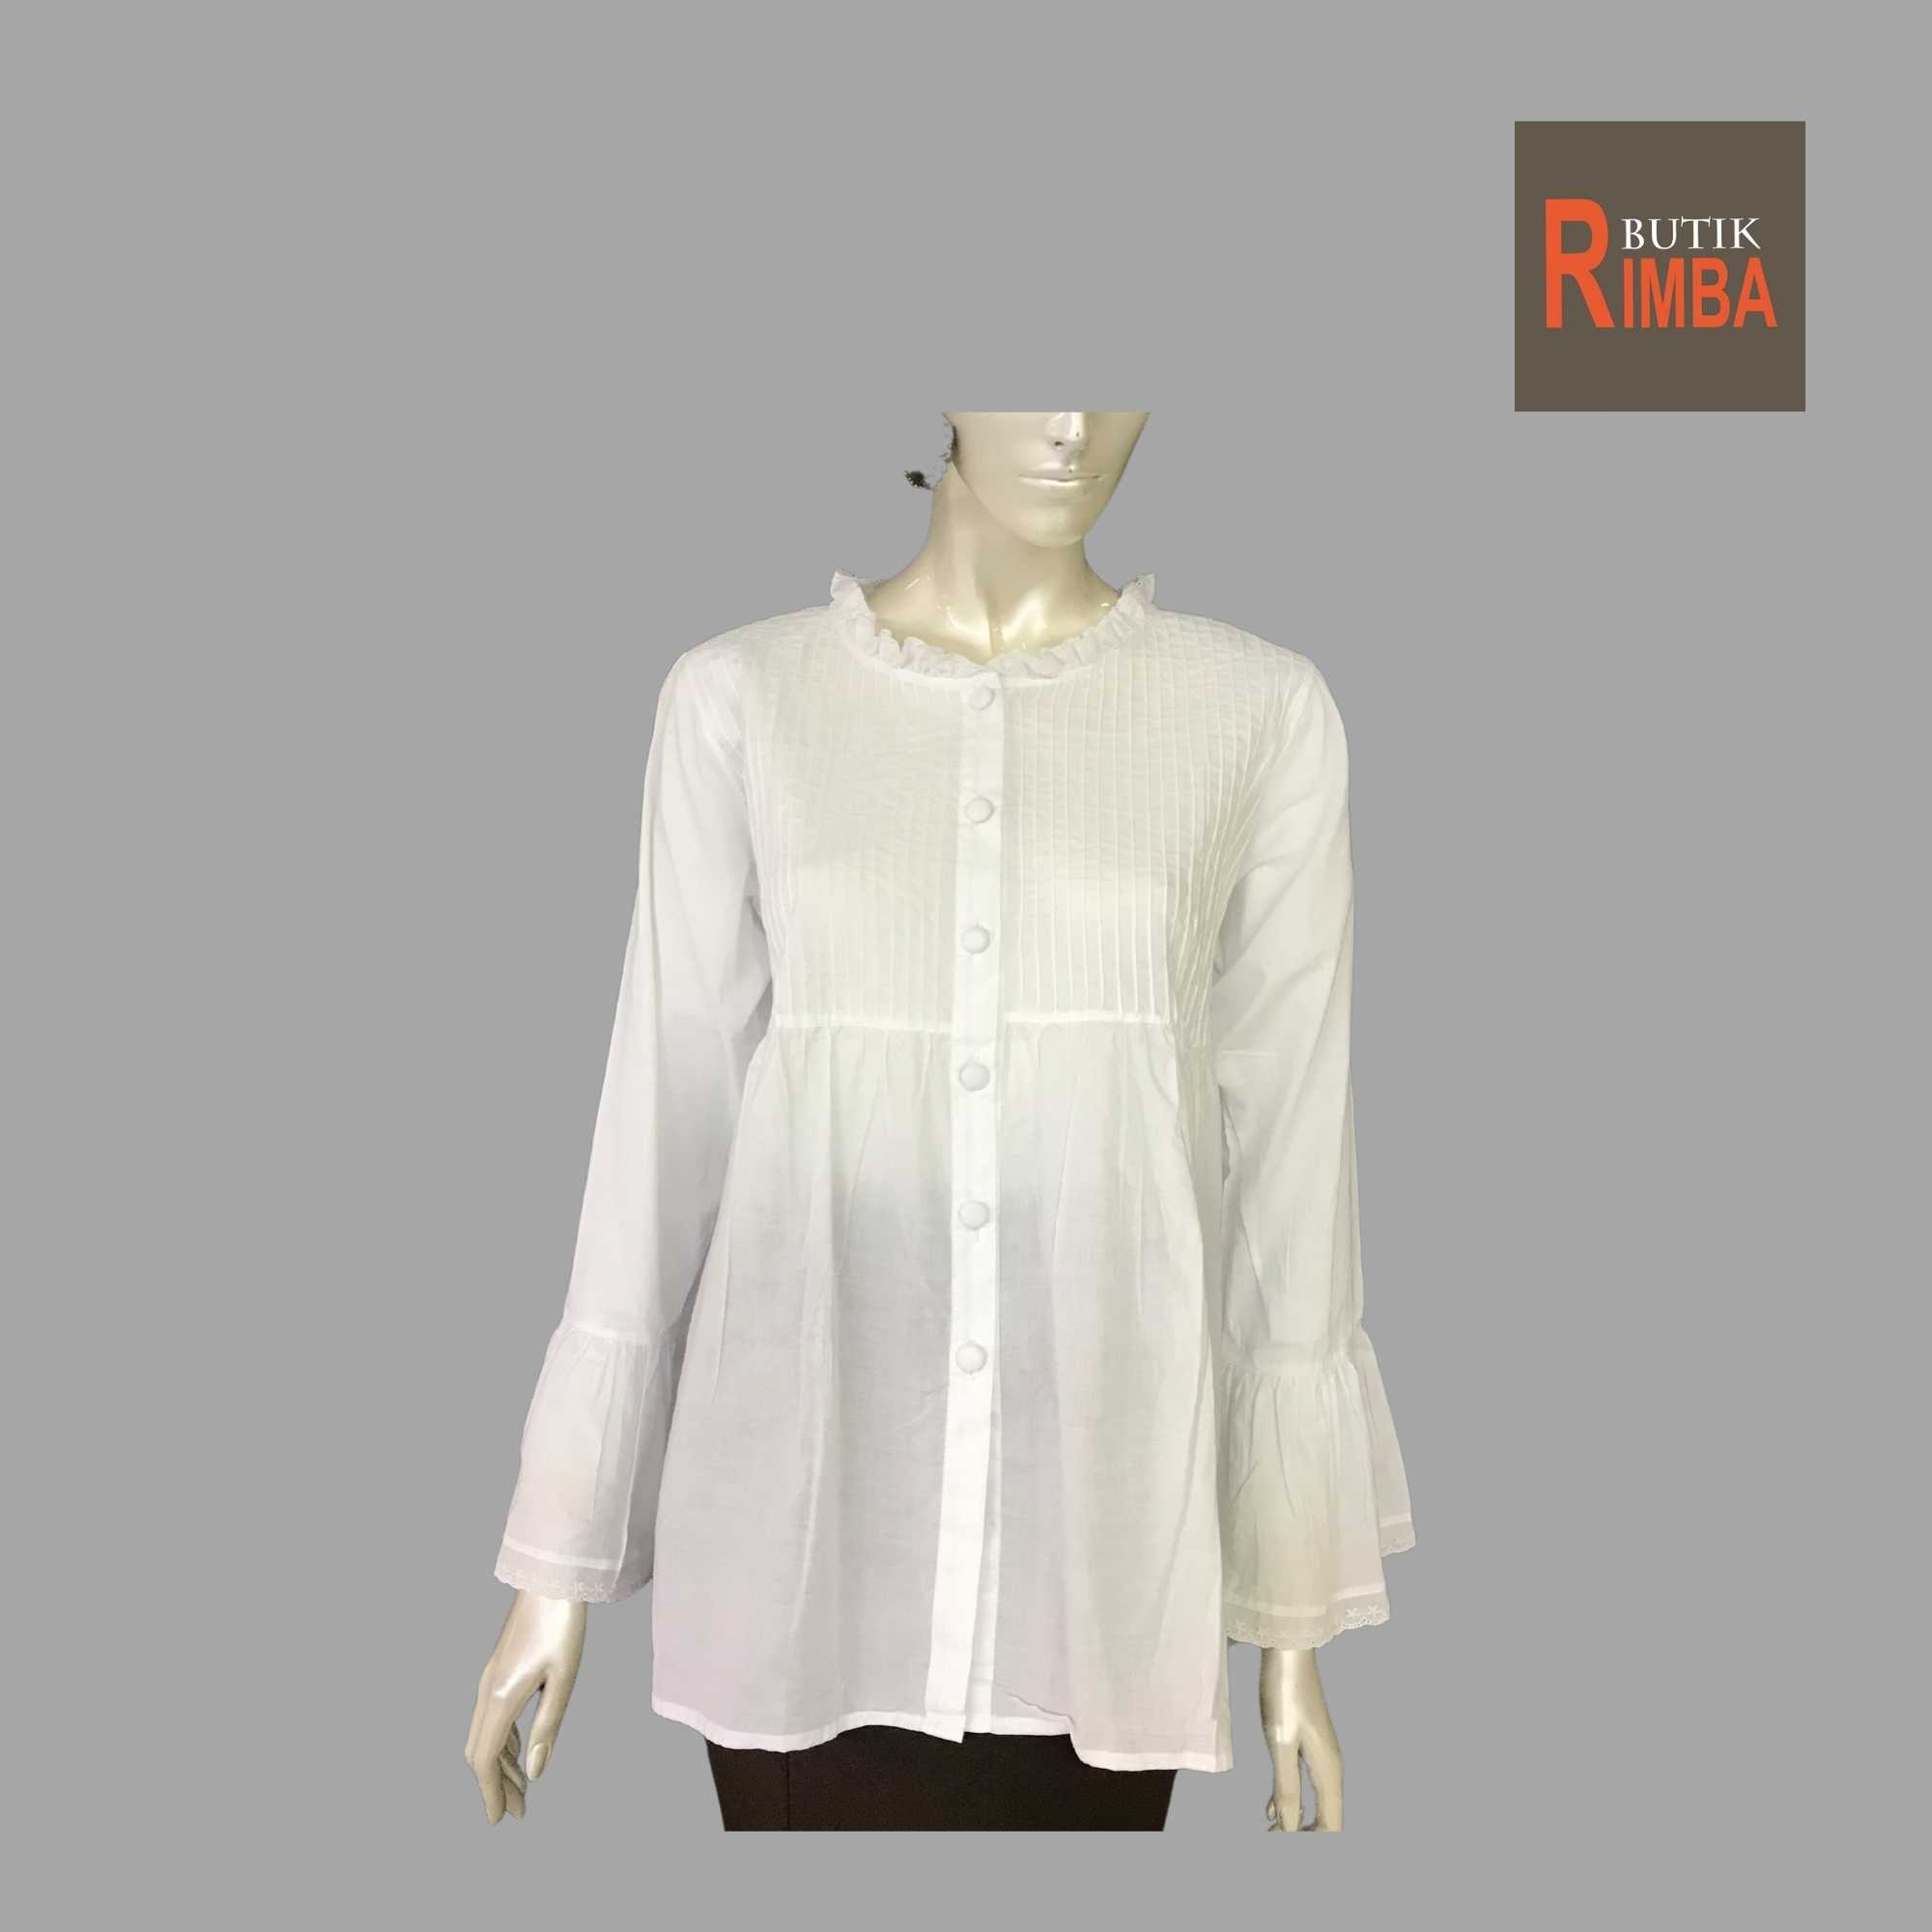 WOMEN CASUAL AND COMFORTABLE WHITE BLOUSE COTTON FREE SIZE PATTERN 10